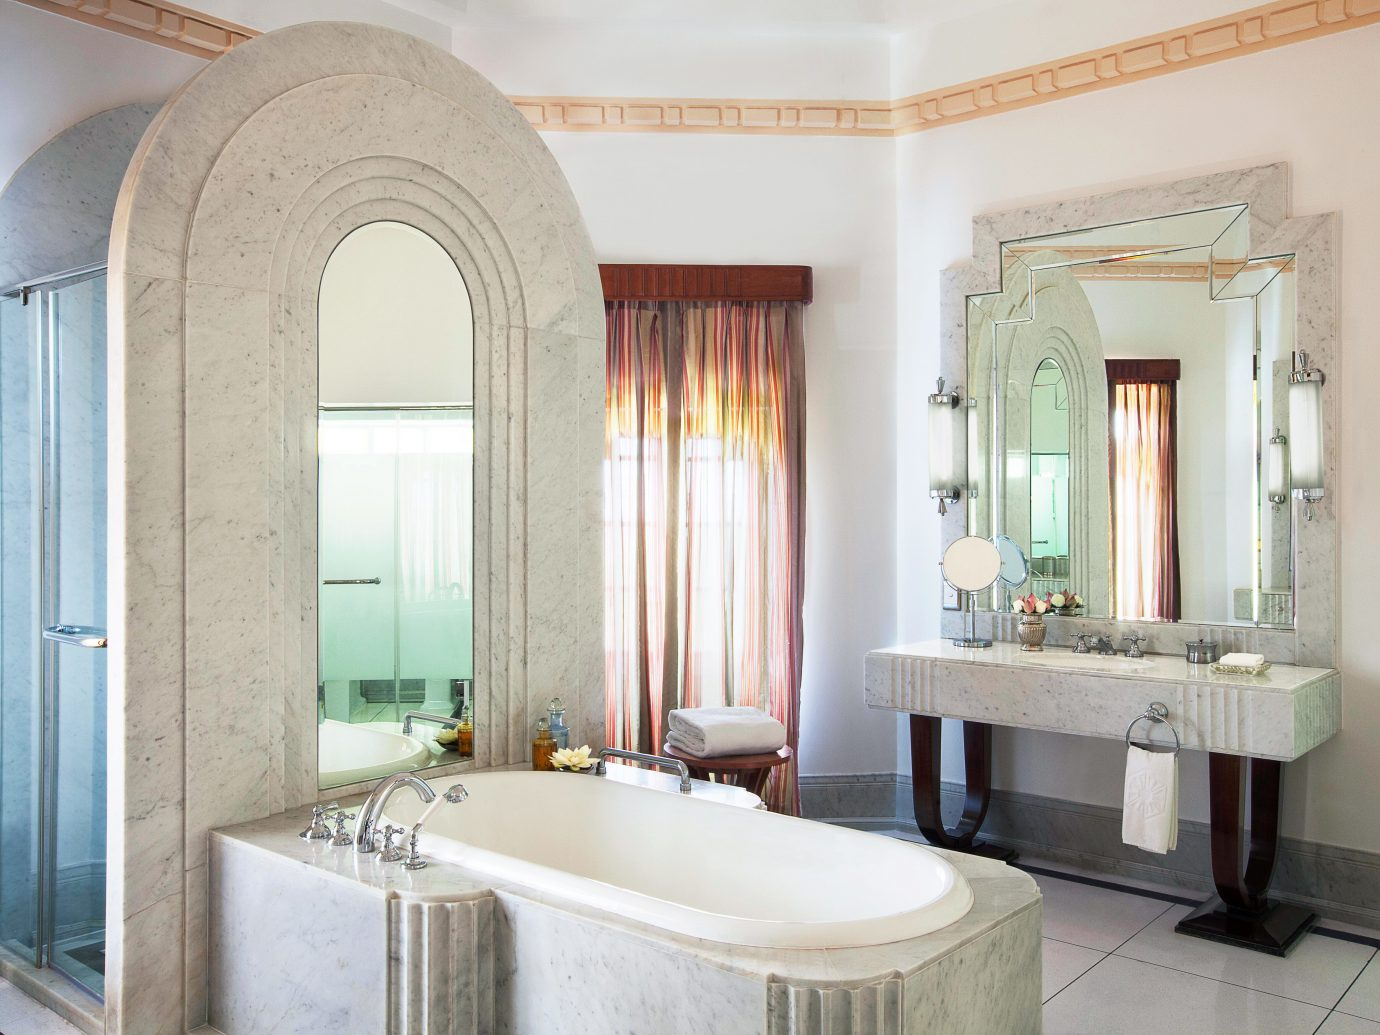 Bath Elegant Hotels Living Luxury Resort indoor wall window bathroom room property estate home interior design Suite floor real estate mansion tub bathtub